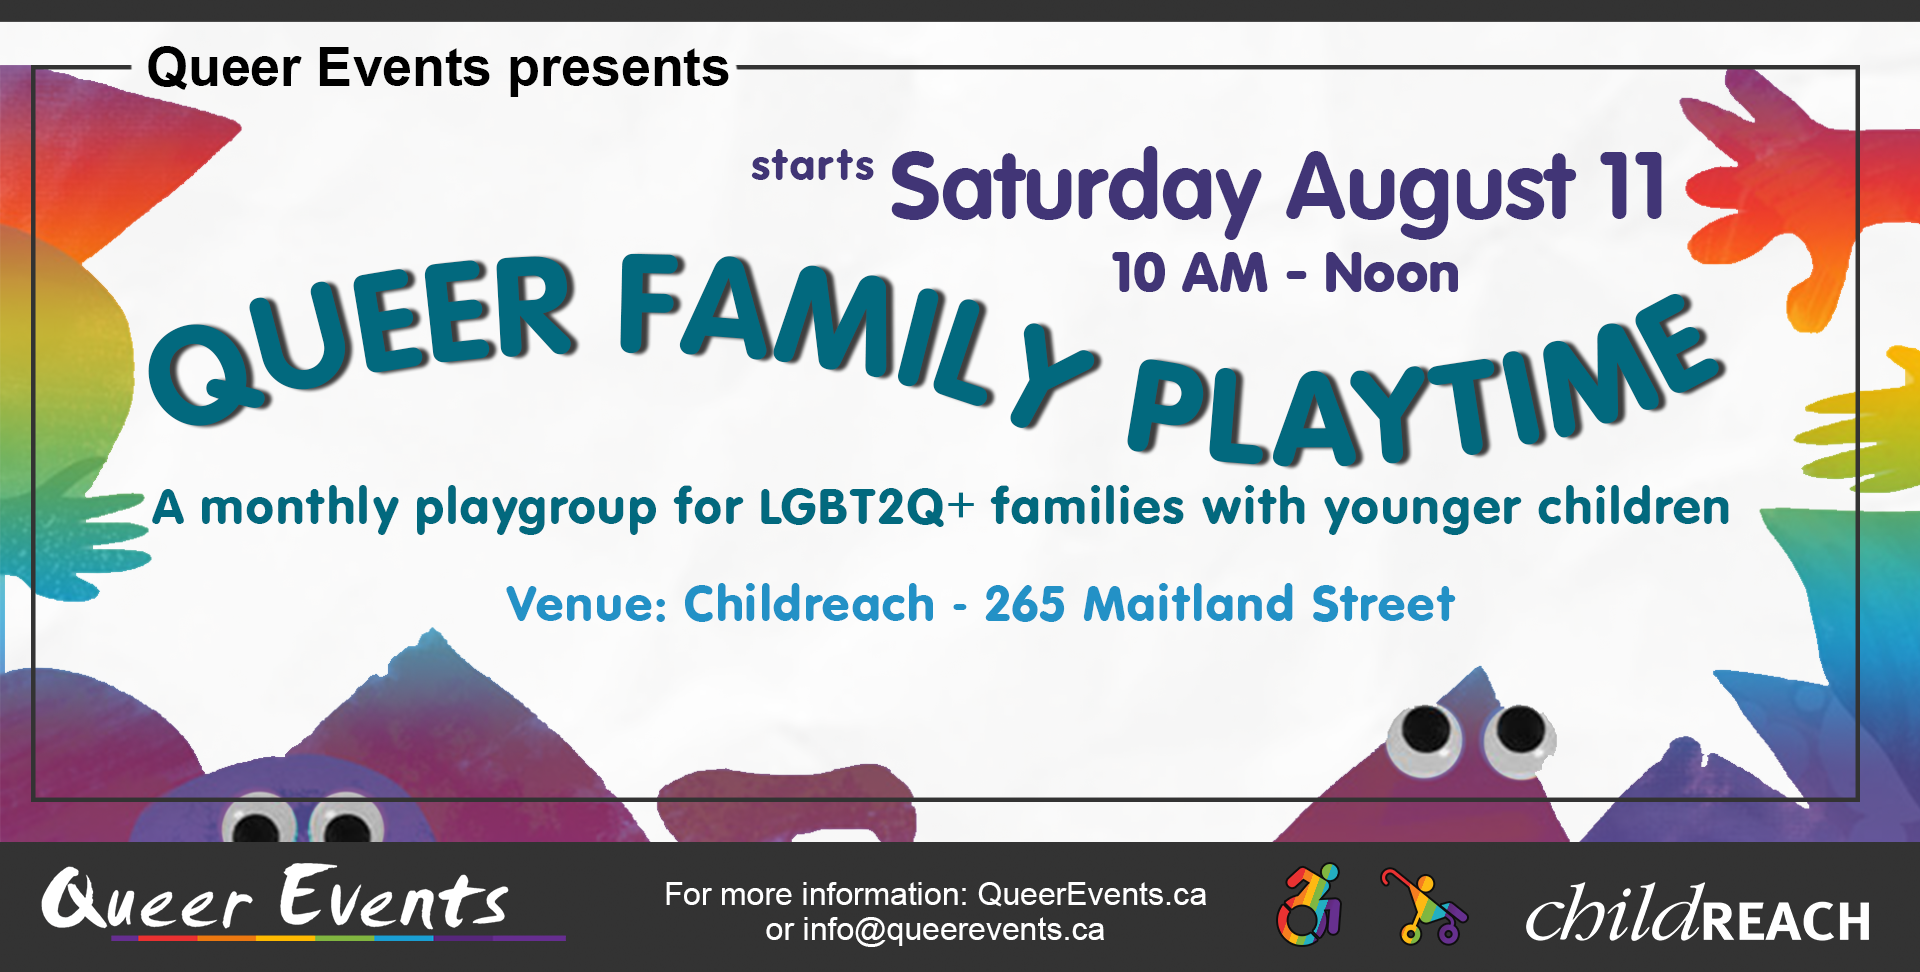 QueerEvents.ca - Queer Family Playtime - event banner